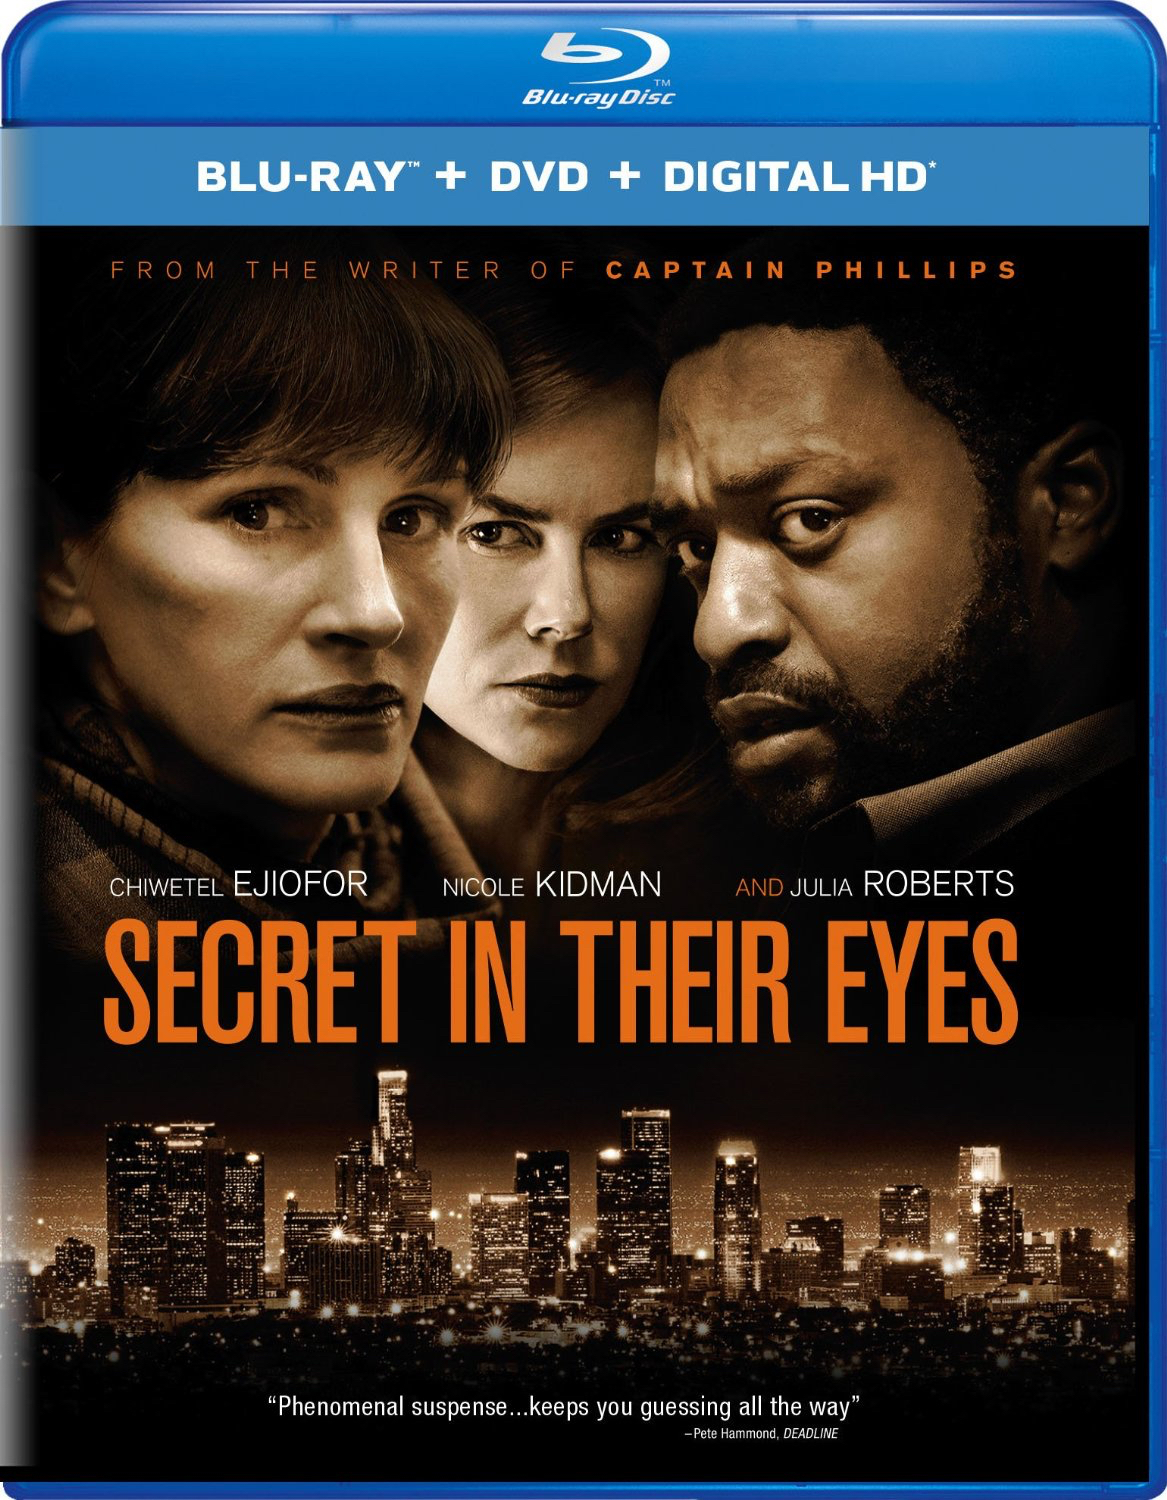 Secret in Their Eyes (2015) Blu-ray